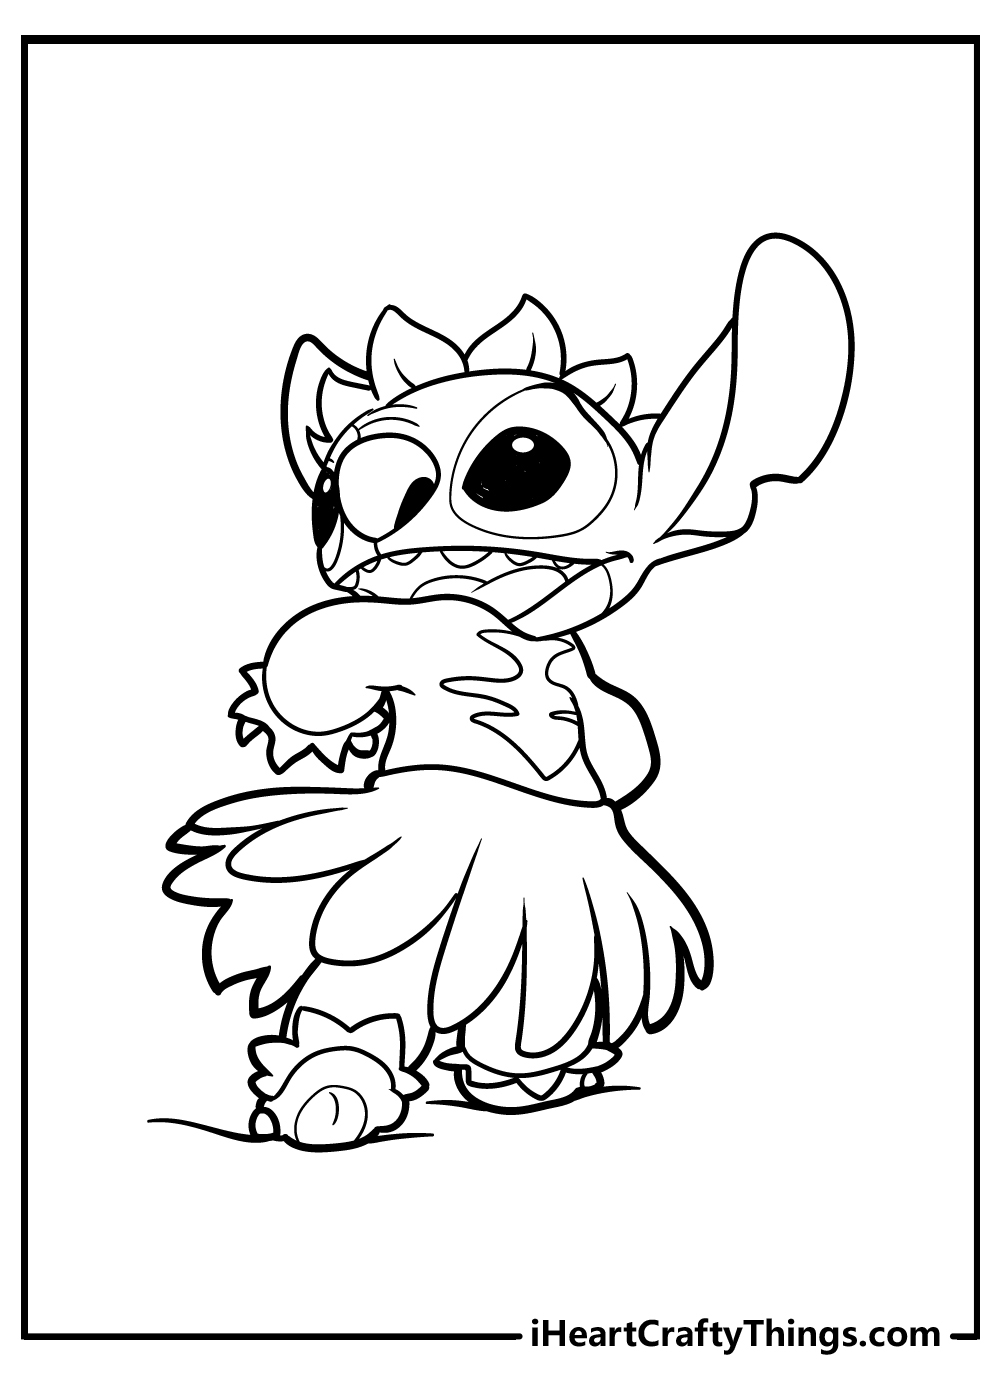 stitch printable coloring pages free download